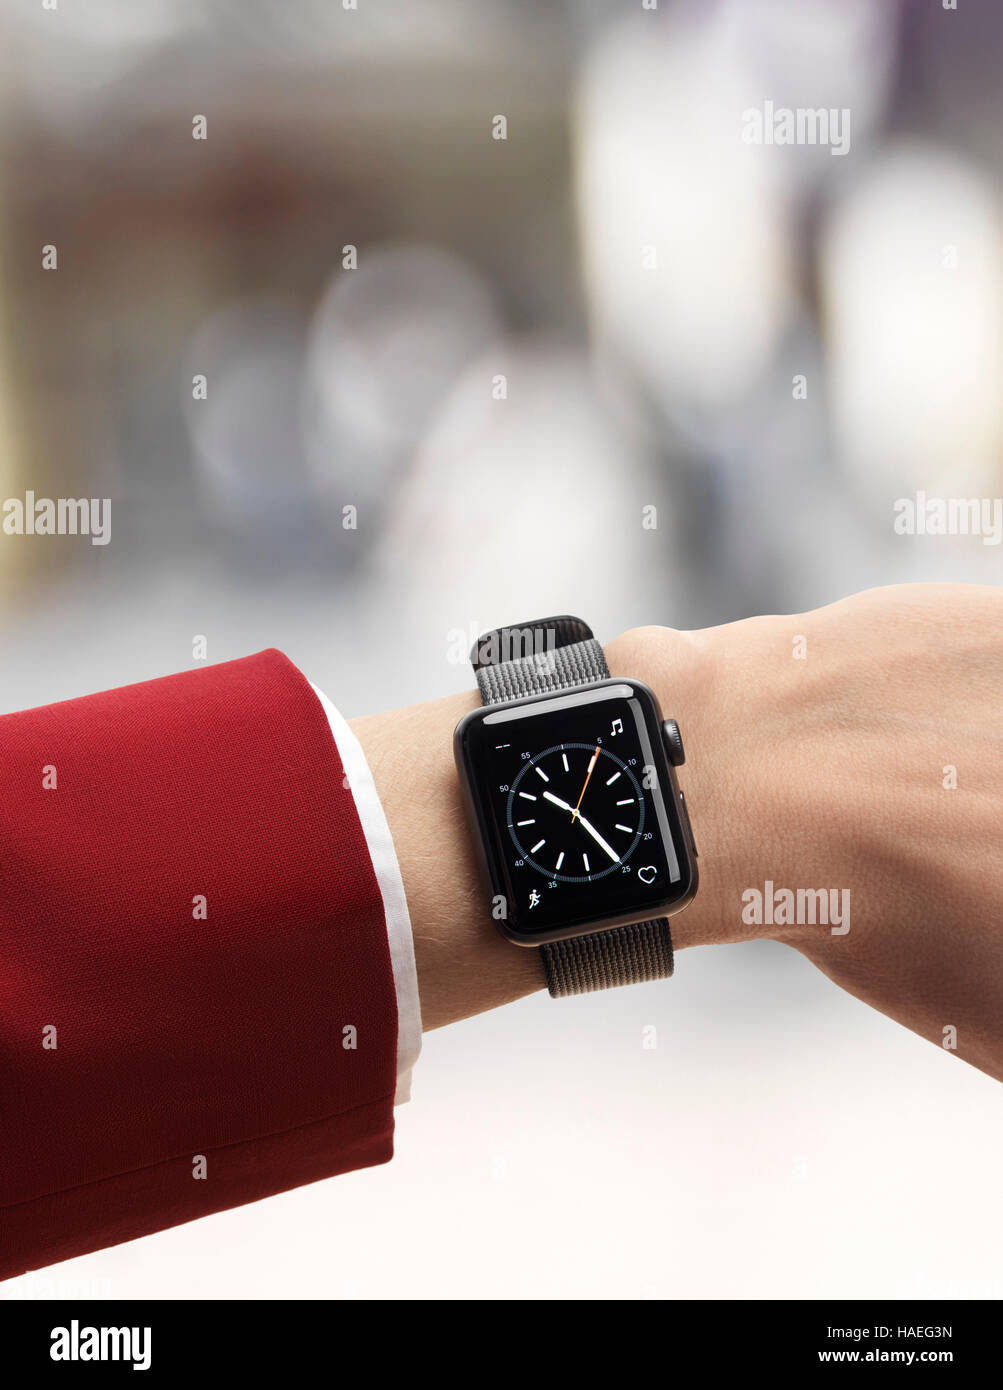 Woman hand with Apple Watch smartwatch on her wrist in outdoor urban scenery isolated on white background - Stock Image